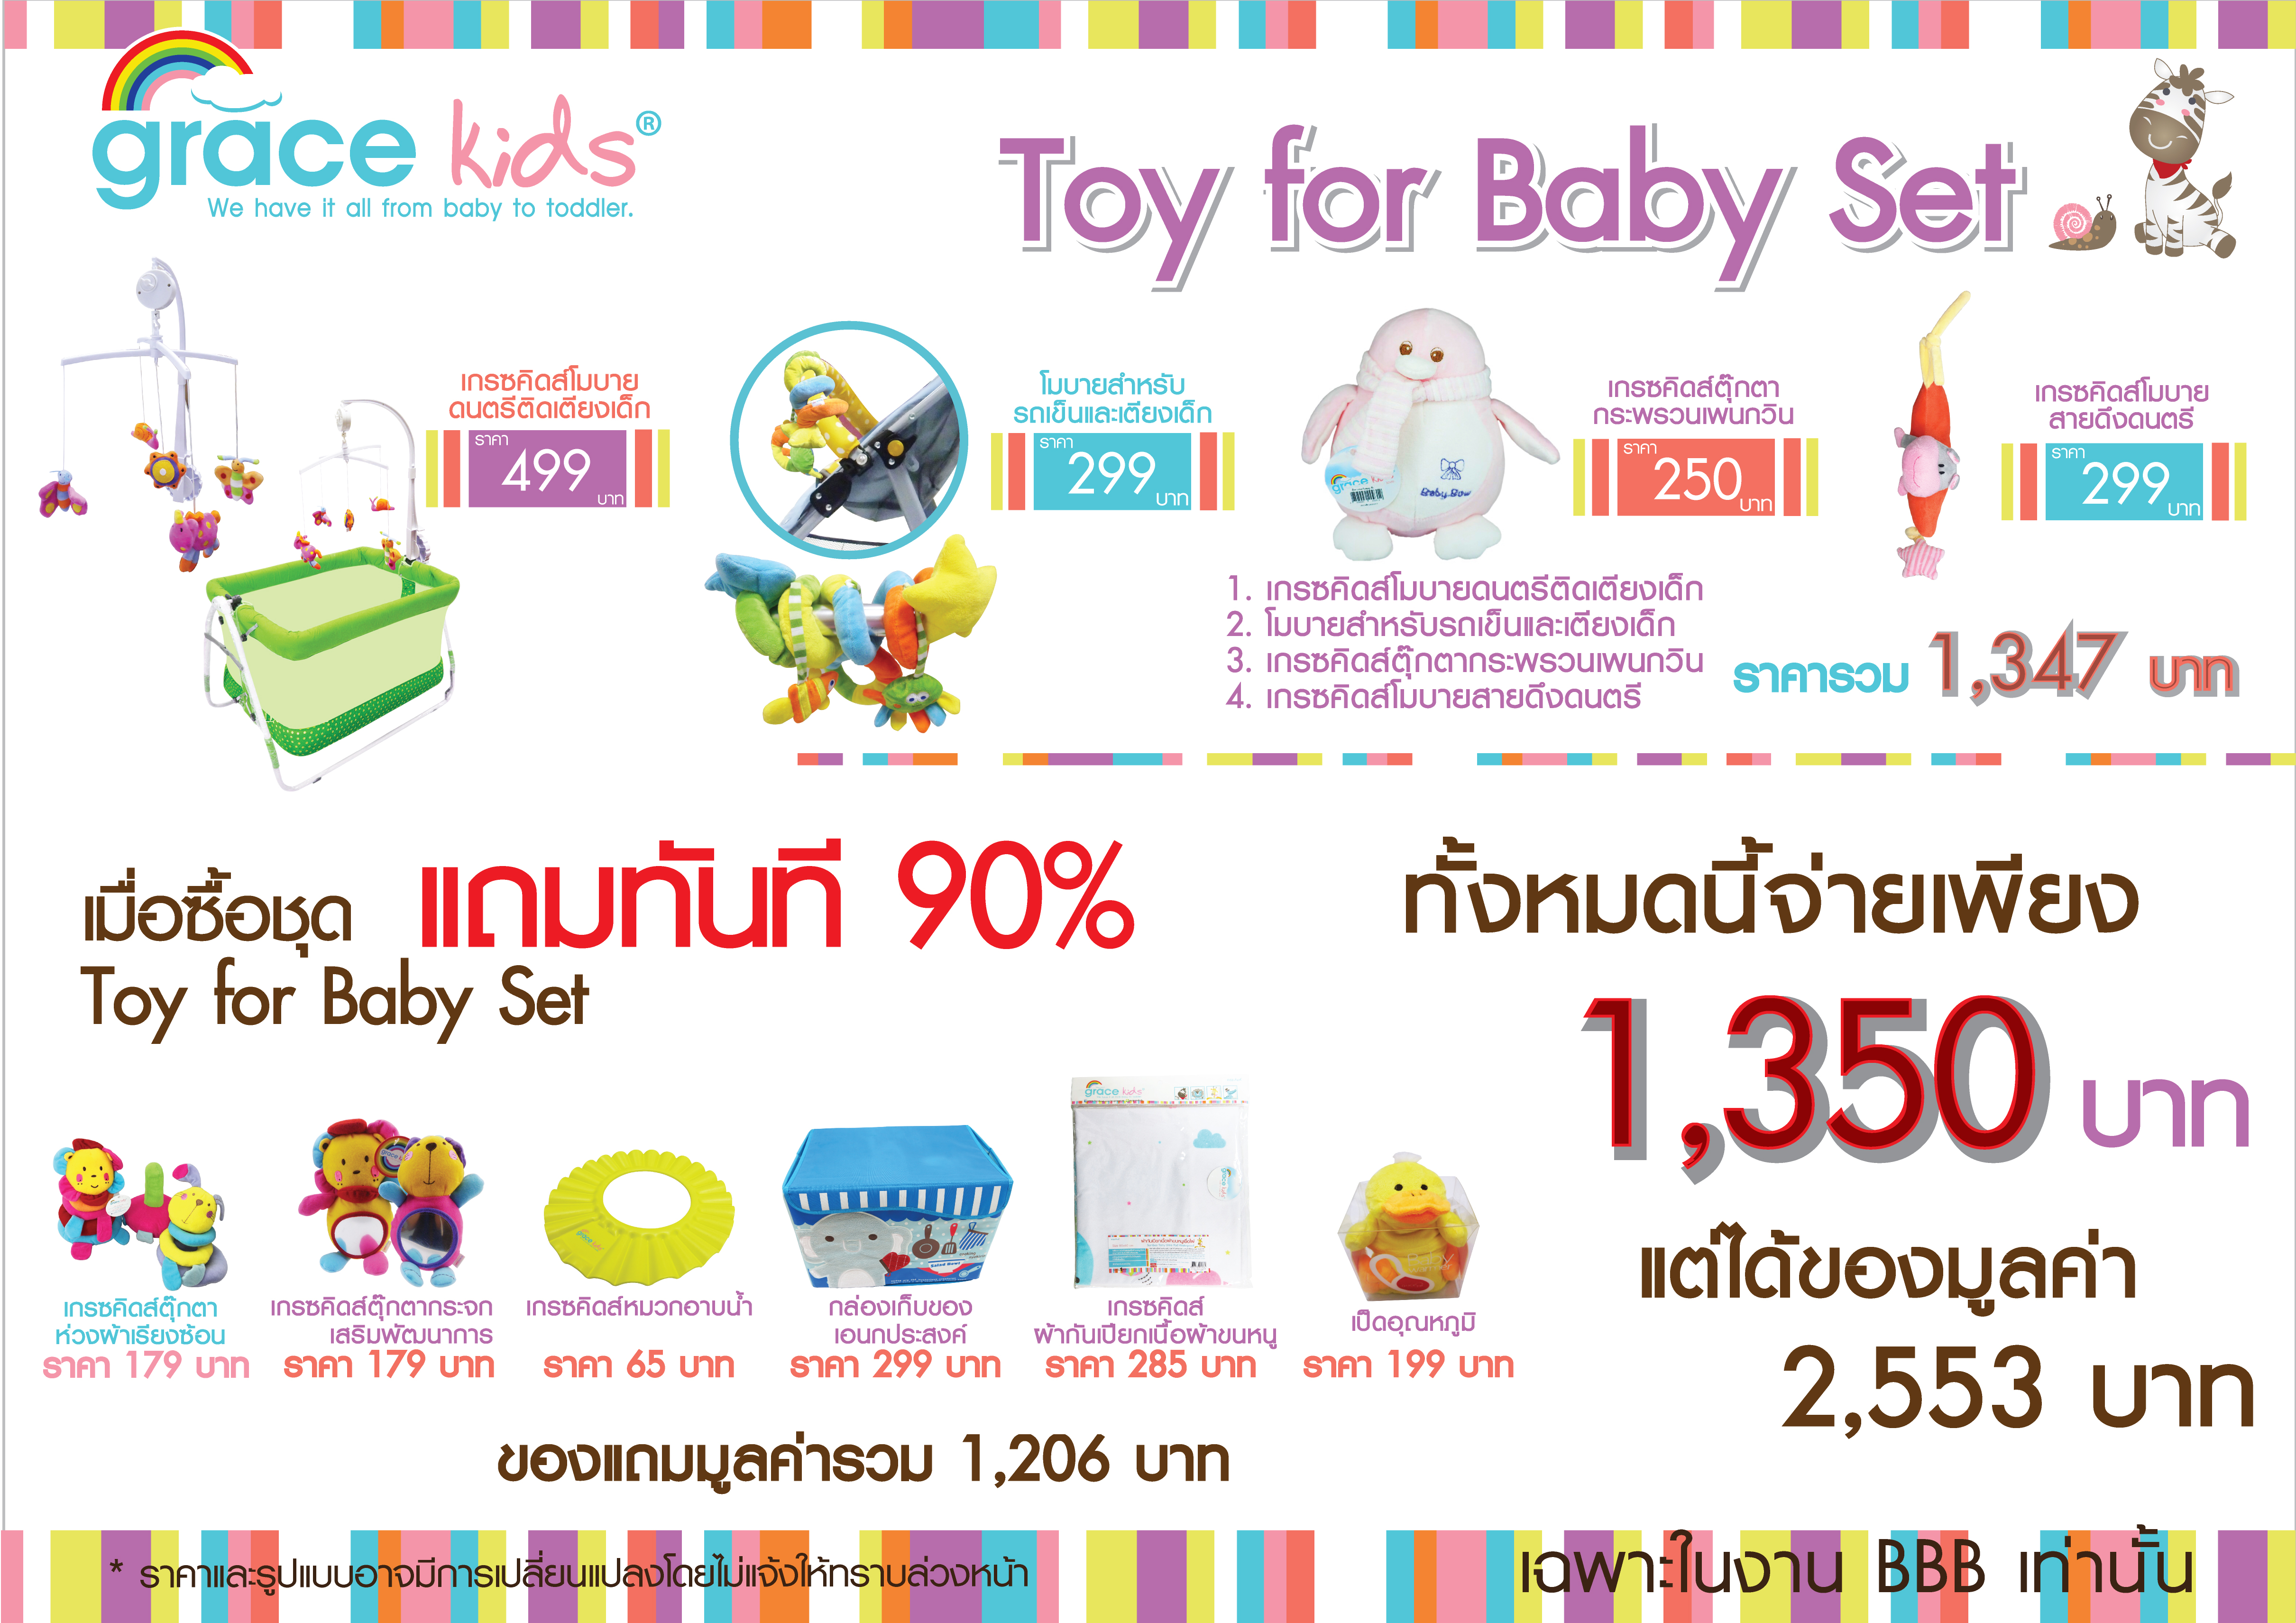 Toy for Baby Set (10 รายการ)